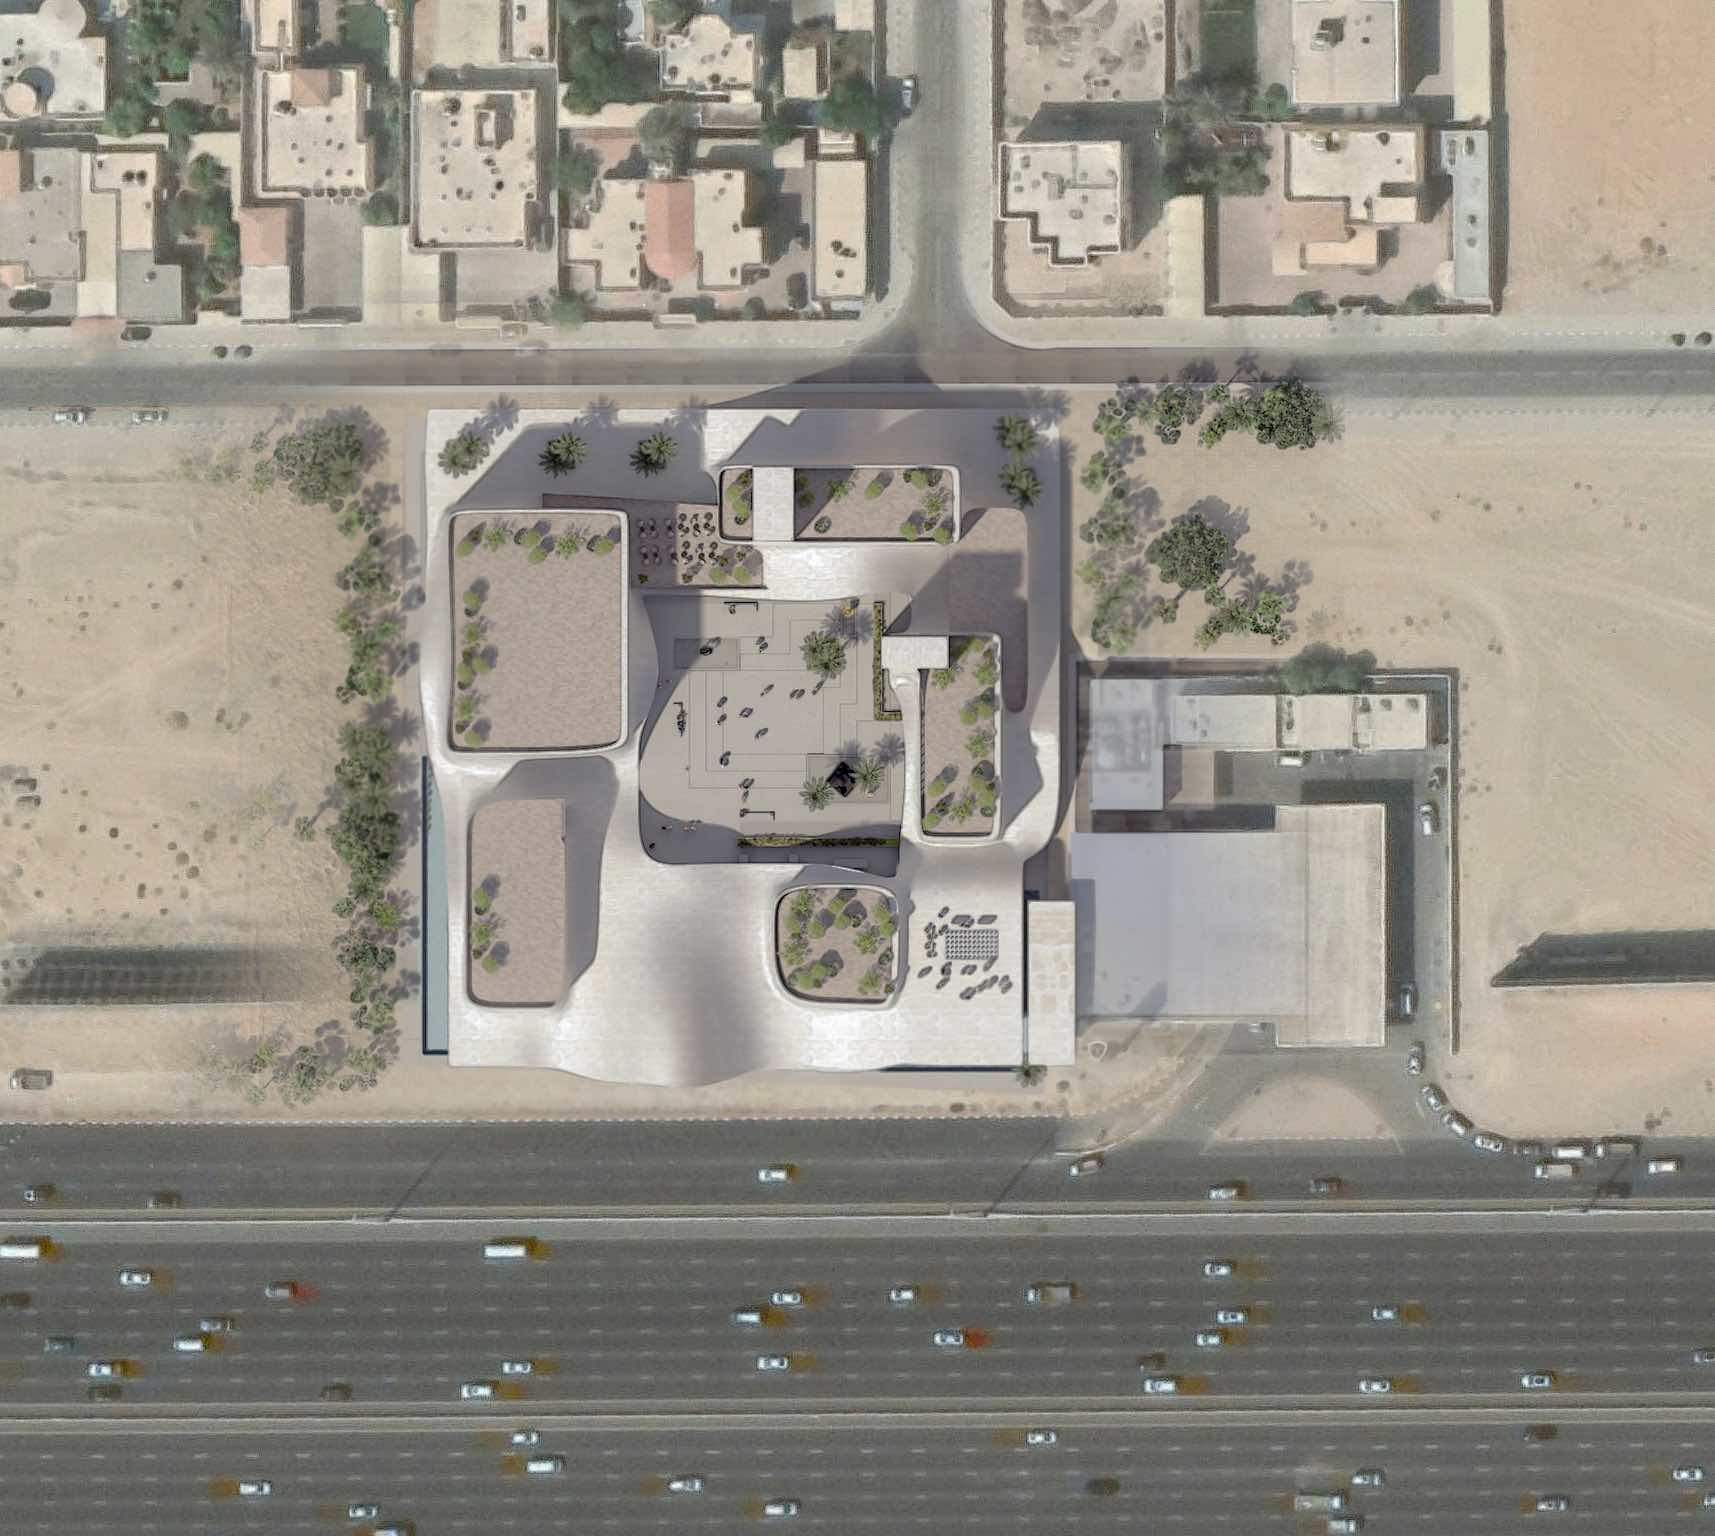 the site plan view from above